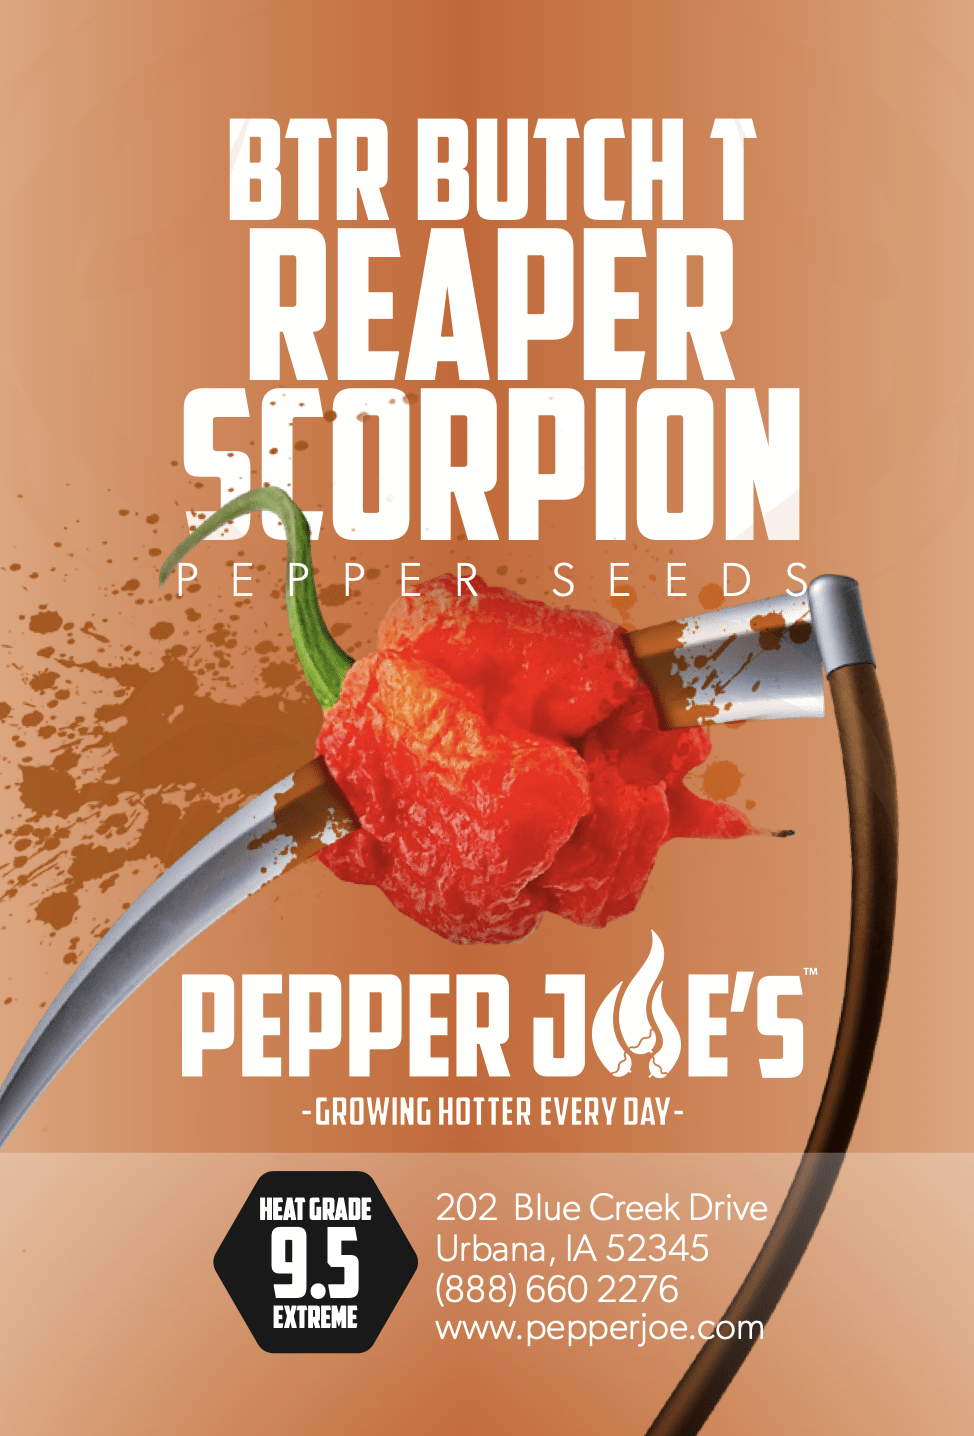 BTR Butch T Reaper Scorpion Hot Pepper - Pepper Joe's